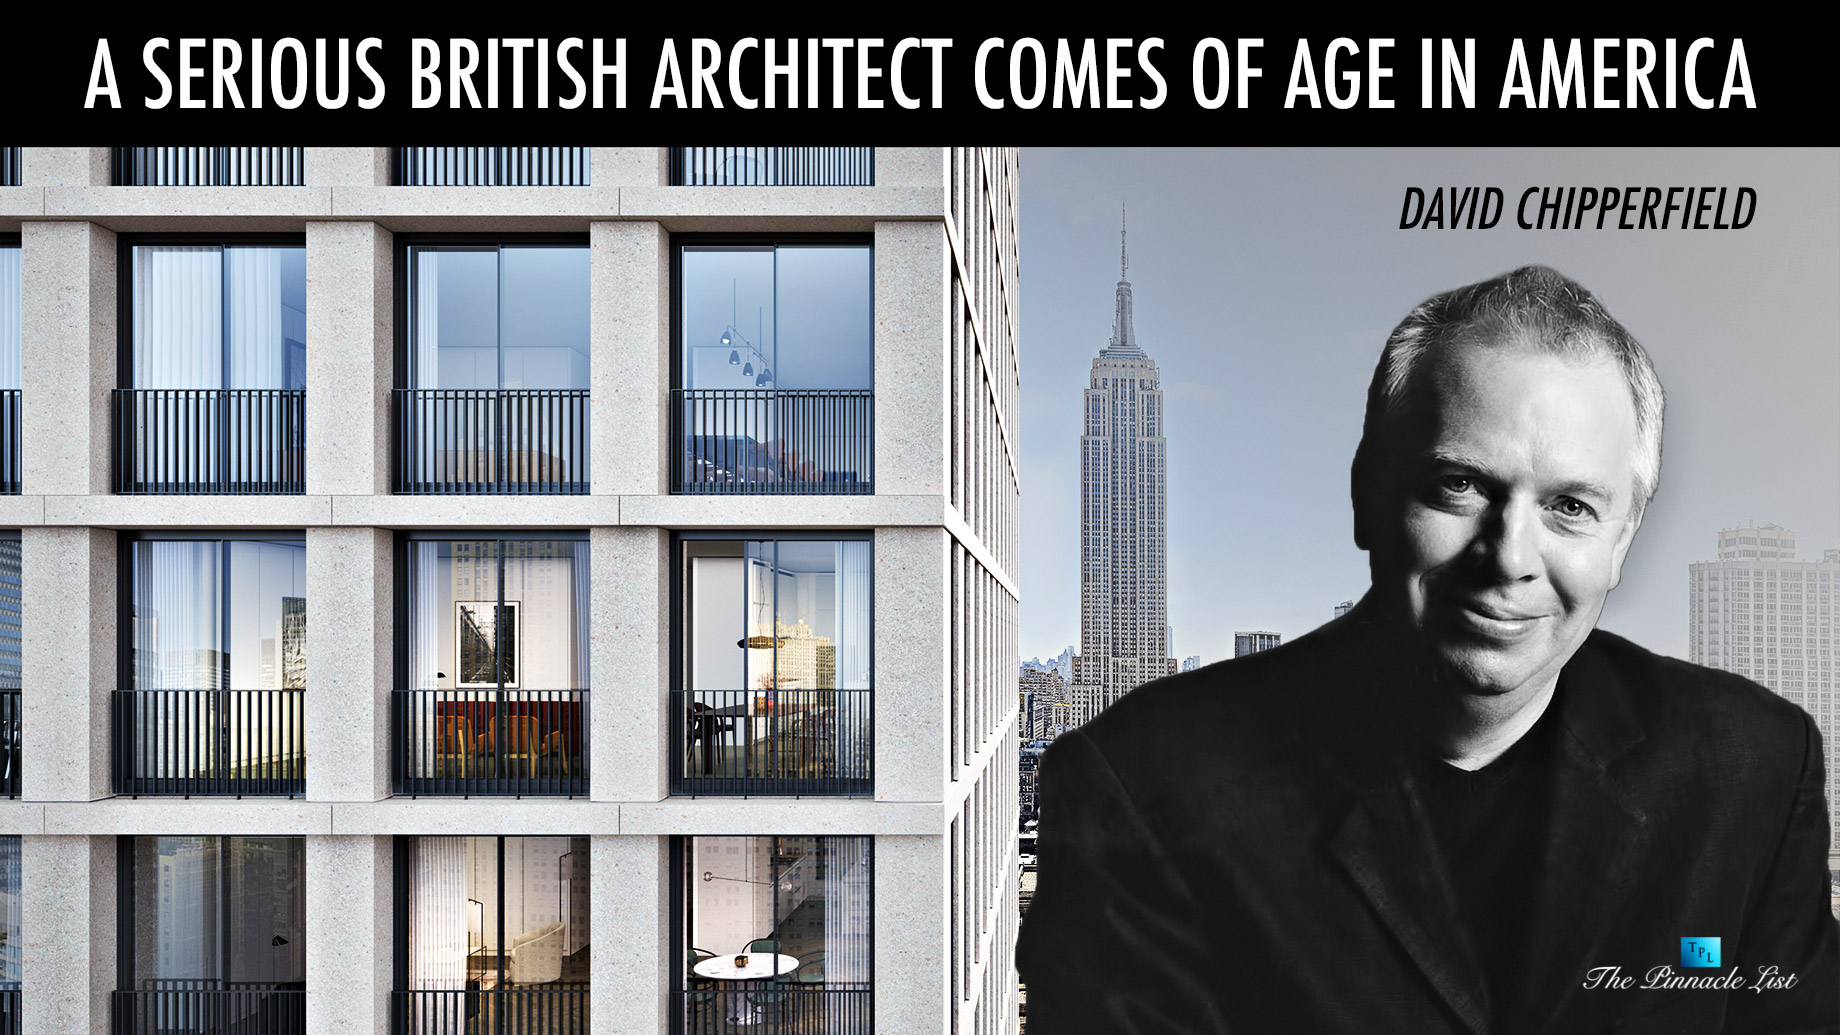 David Chipperfield - A Serious British Architect Comes of Age in America